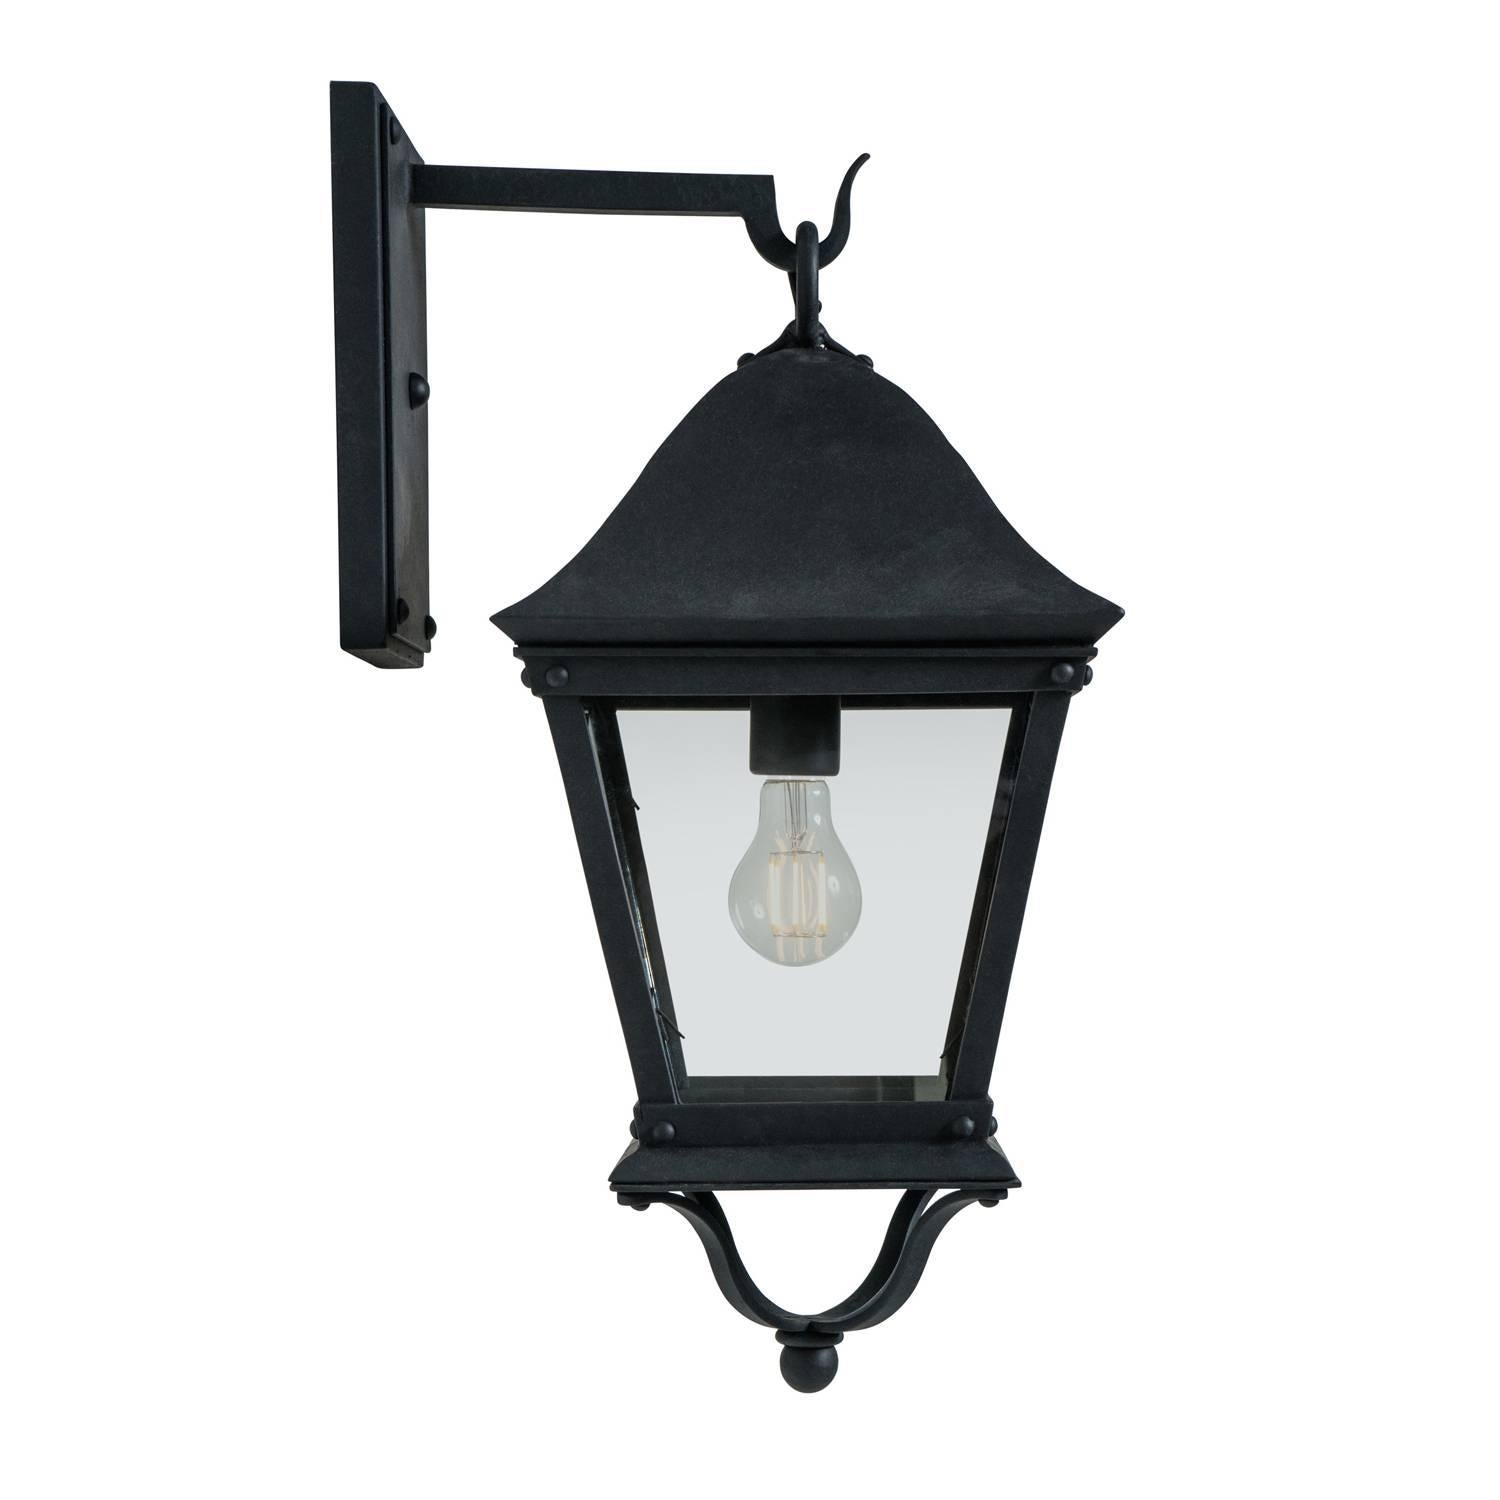 classic spanish colonial exterior outdoor wrought iron wall sconce grey